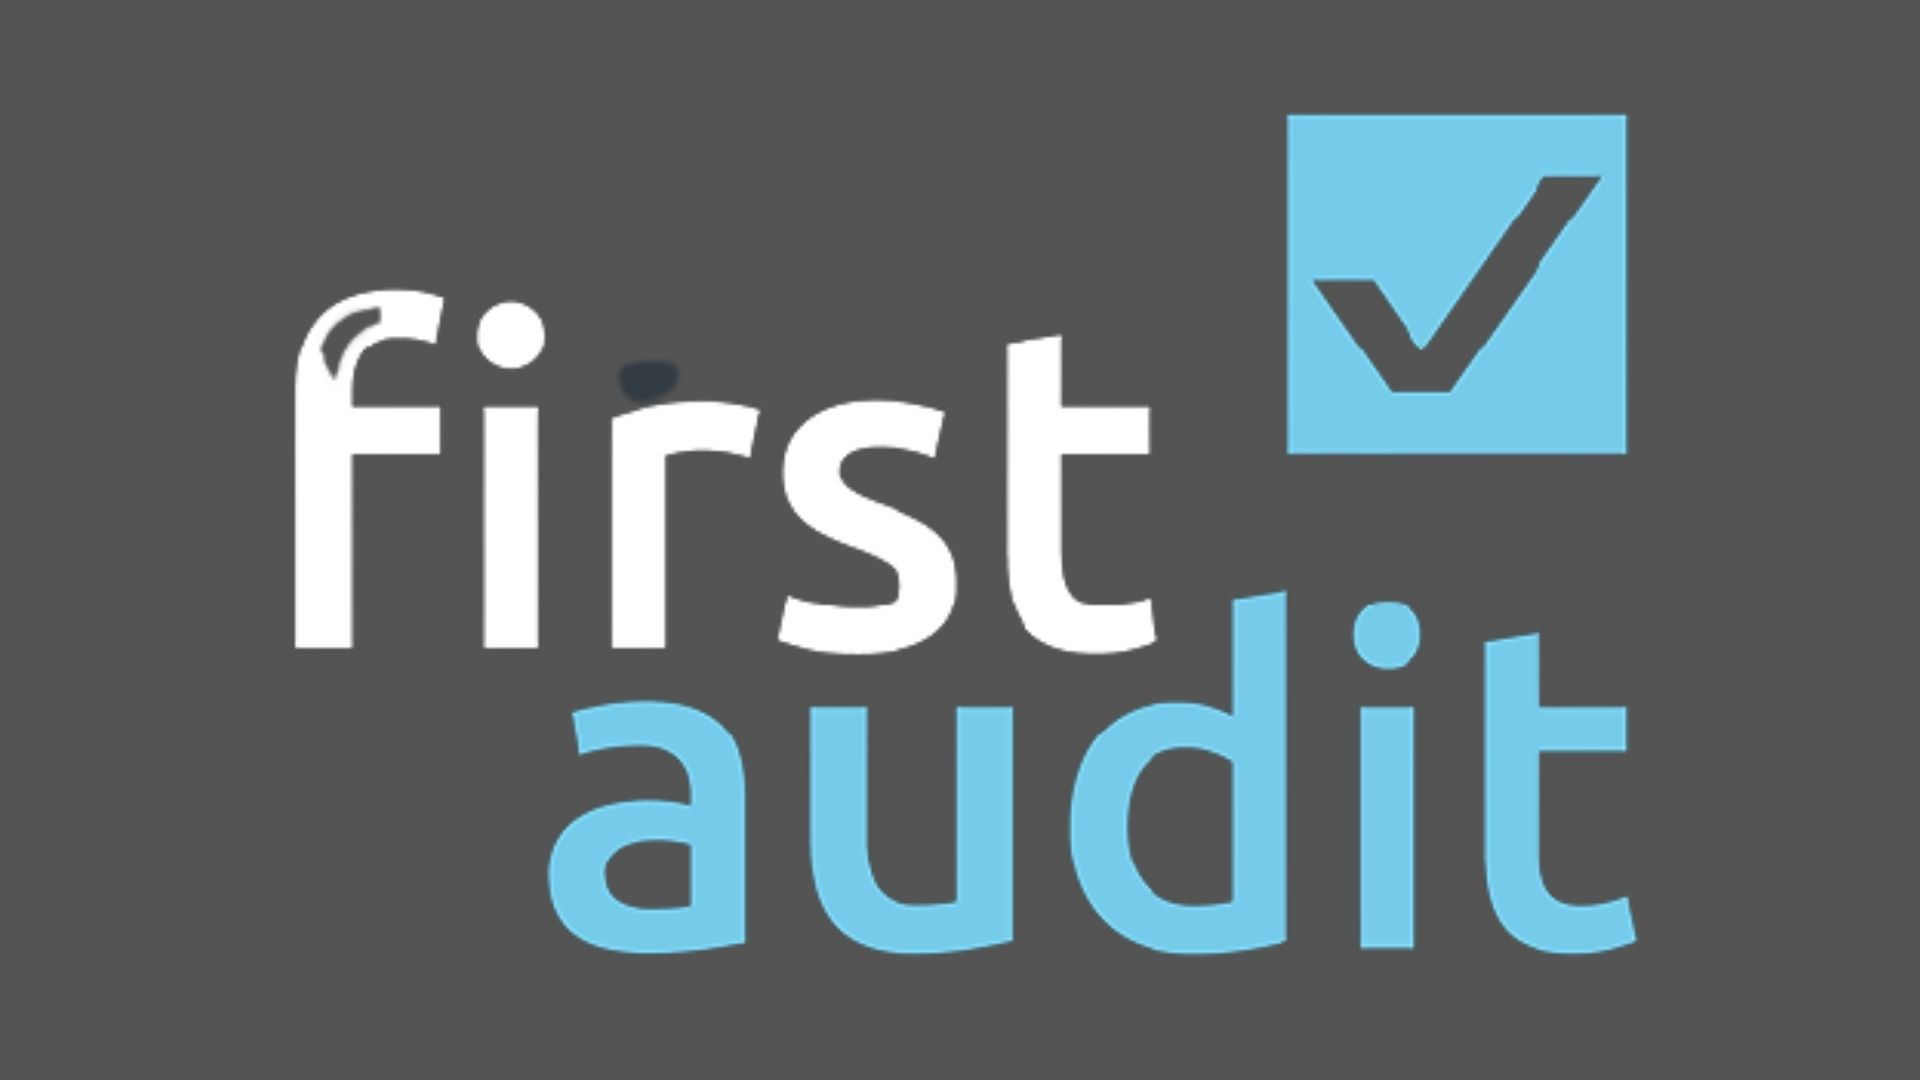 firstaudit LOGO